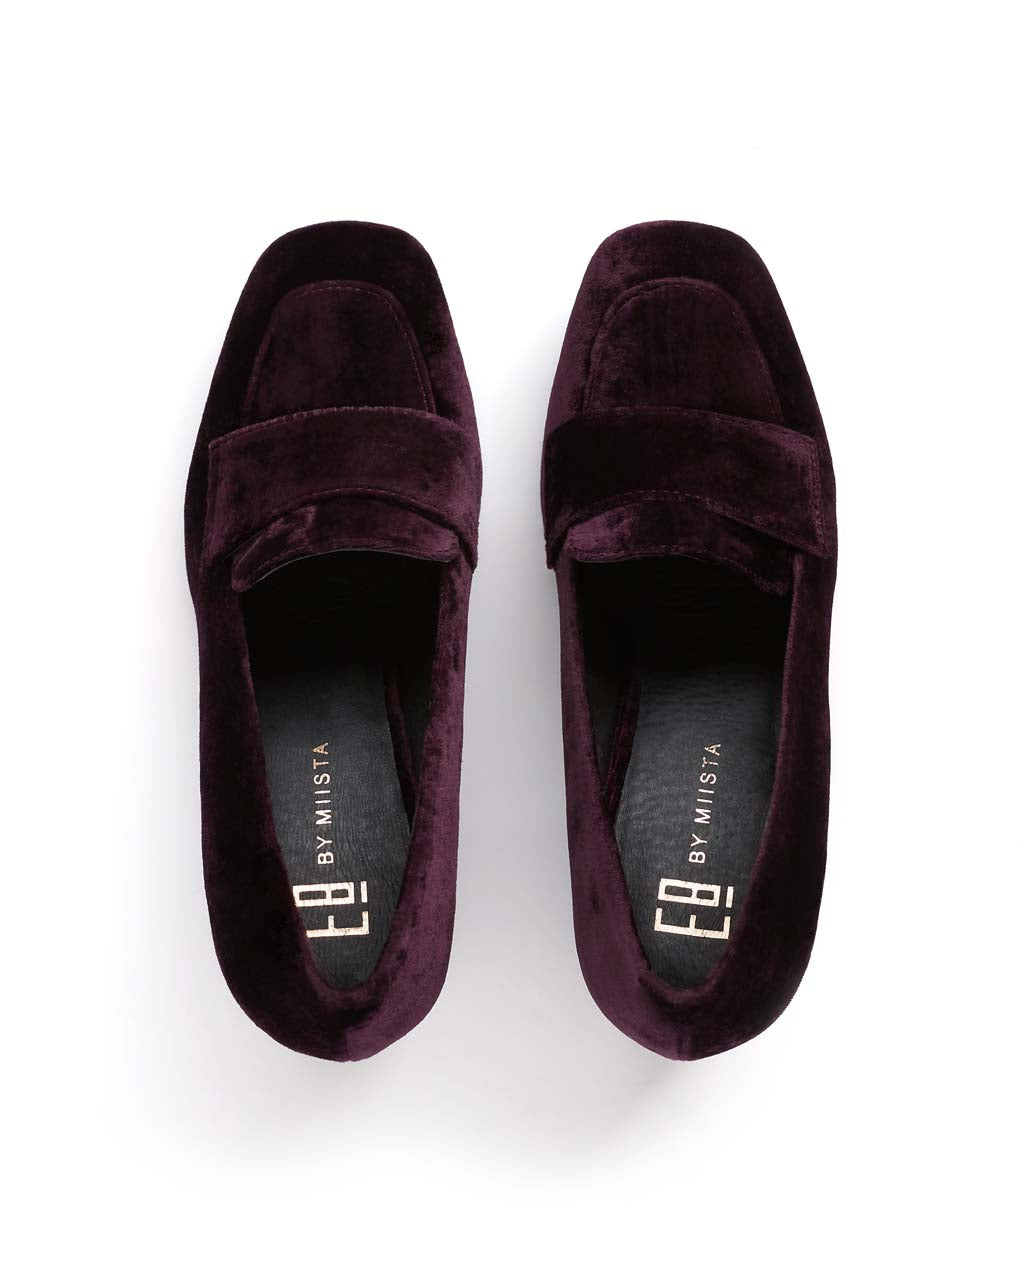 top view of dark red velvet loafers with the E8 by Miista logo on the insole